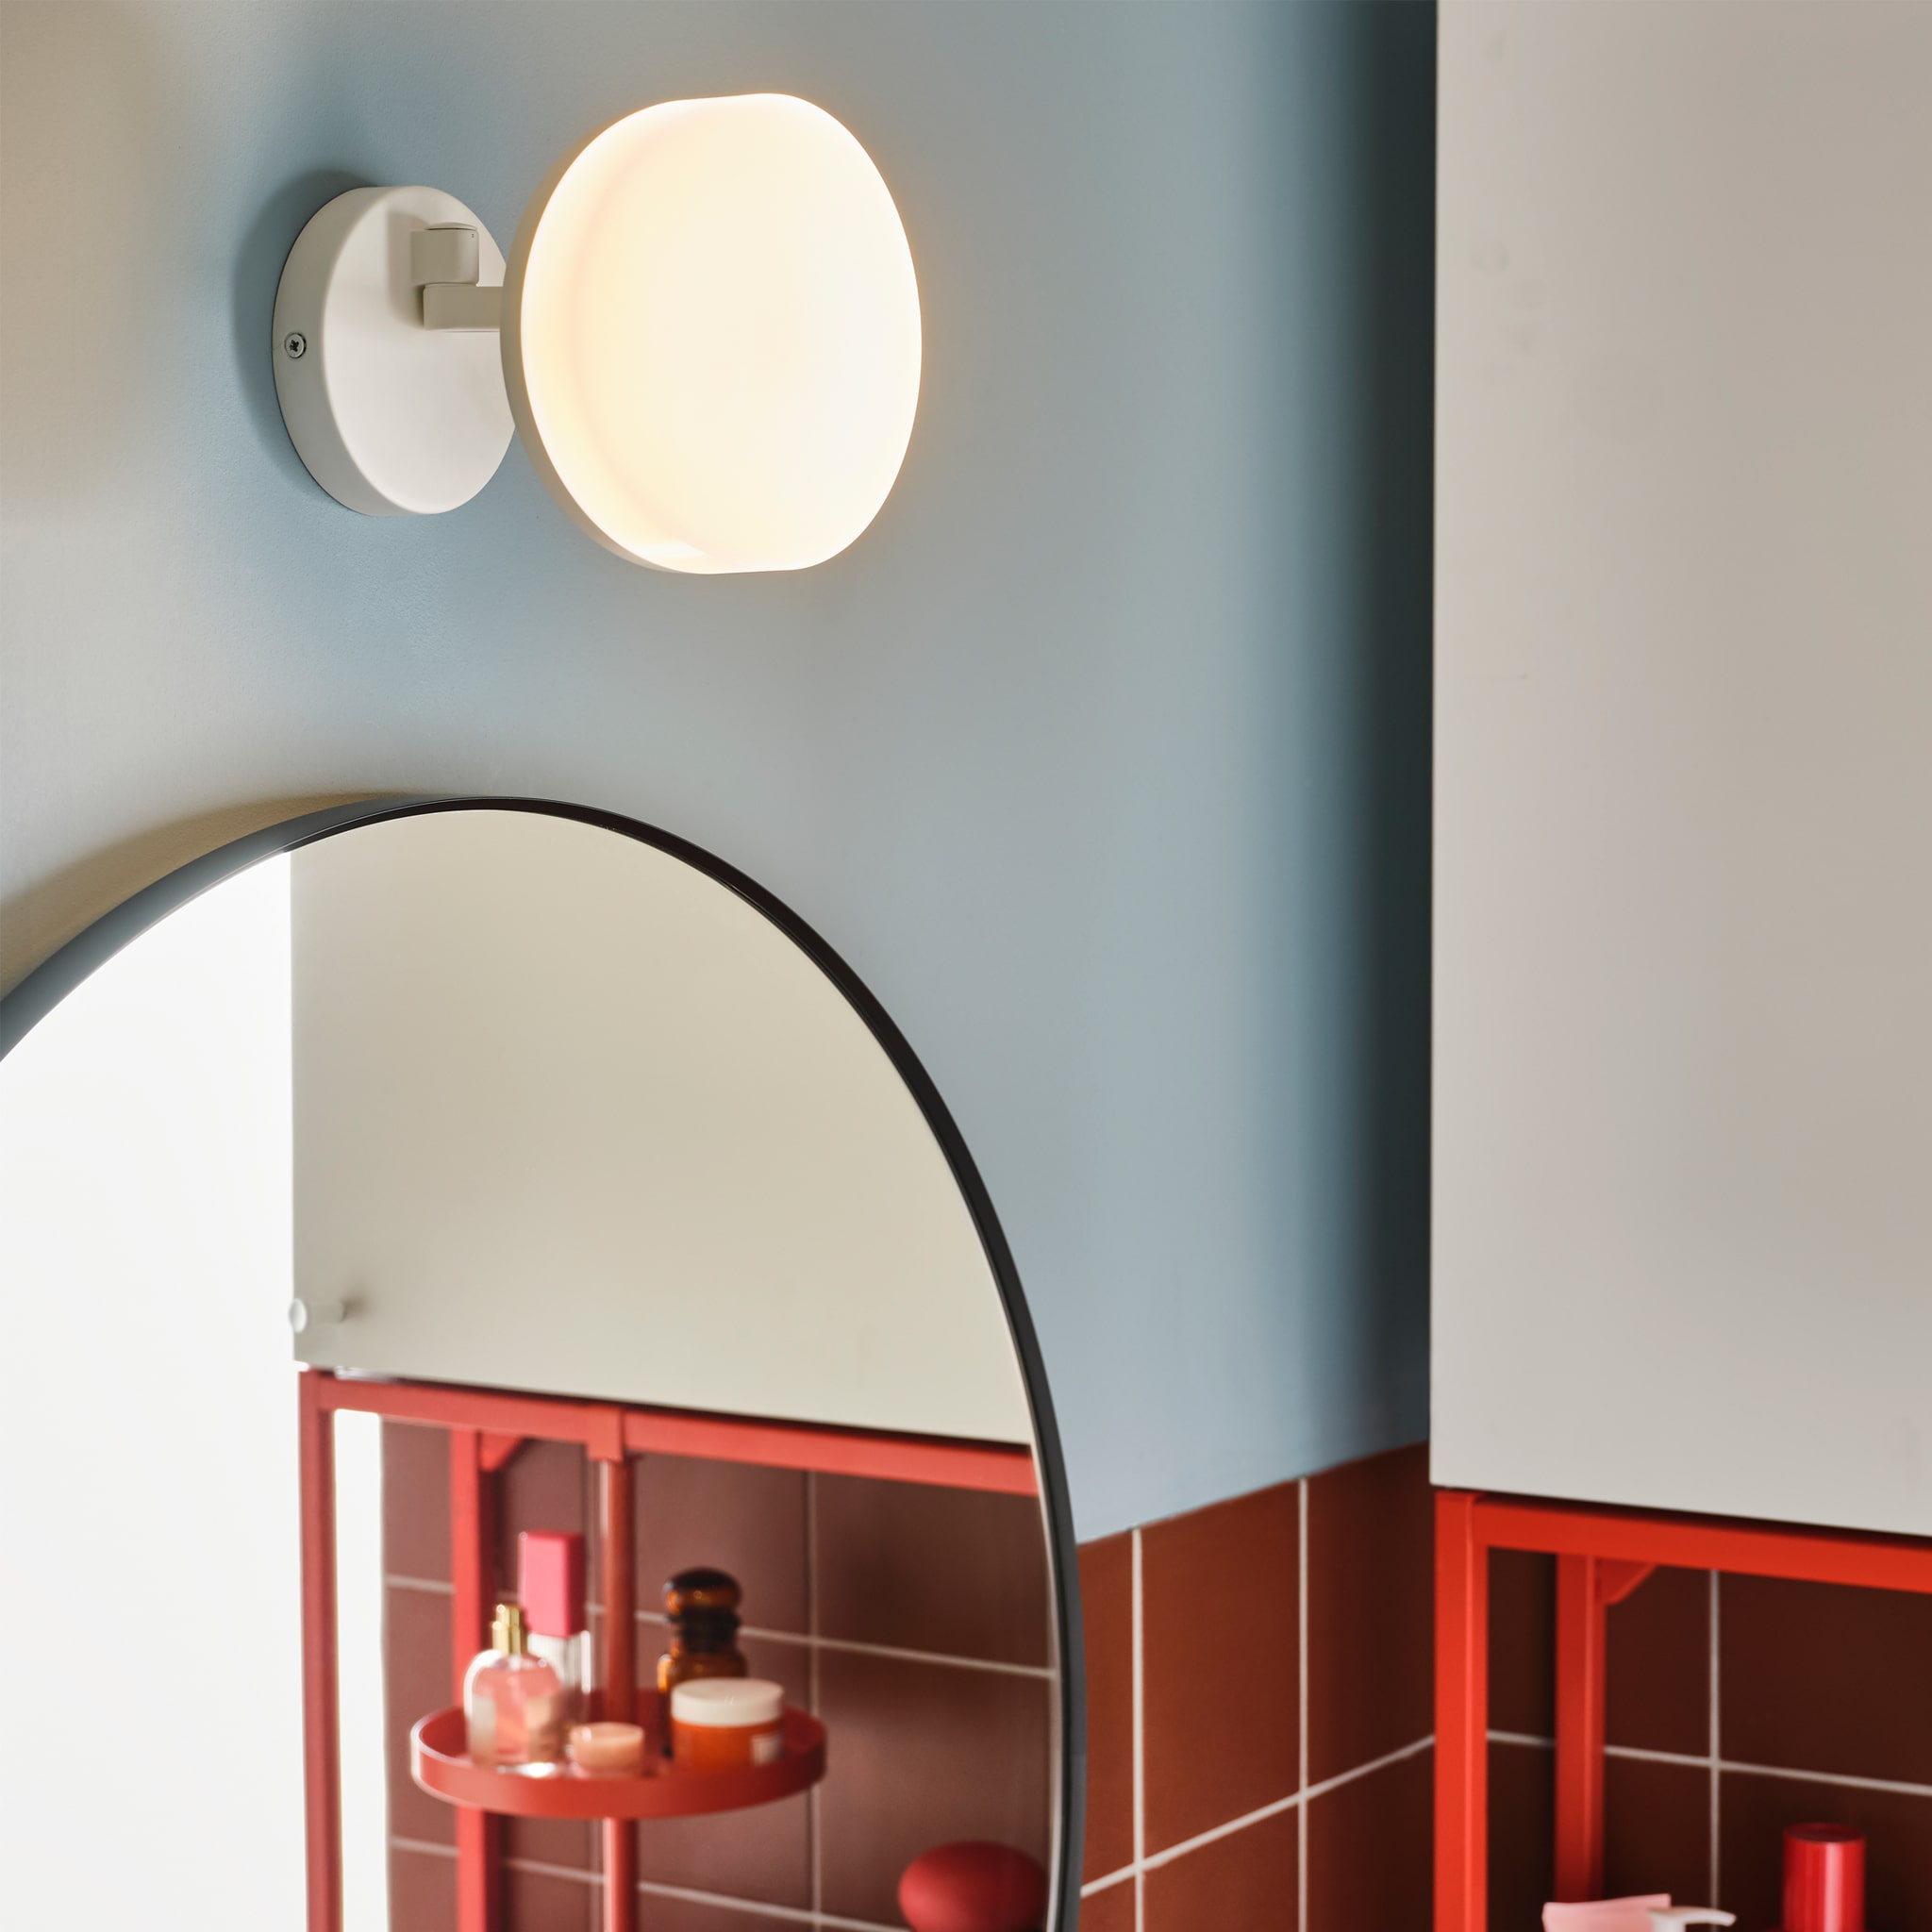 A white wall lamp with swing arm is wall-mounted above a round mirror. A white cabinet and a red-orange shelf are beside.